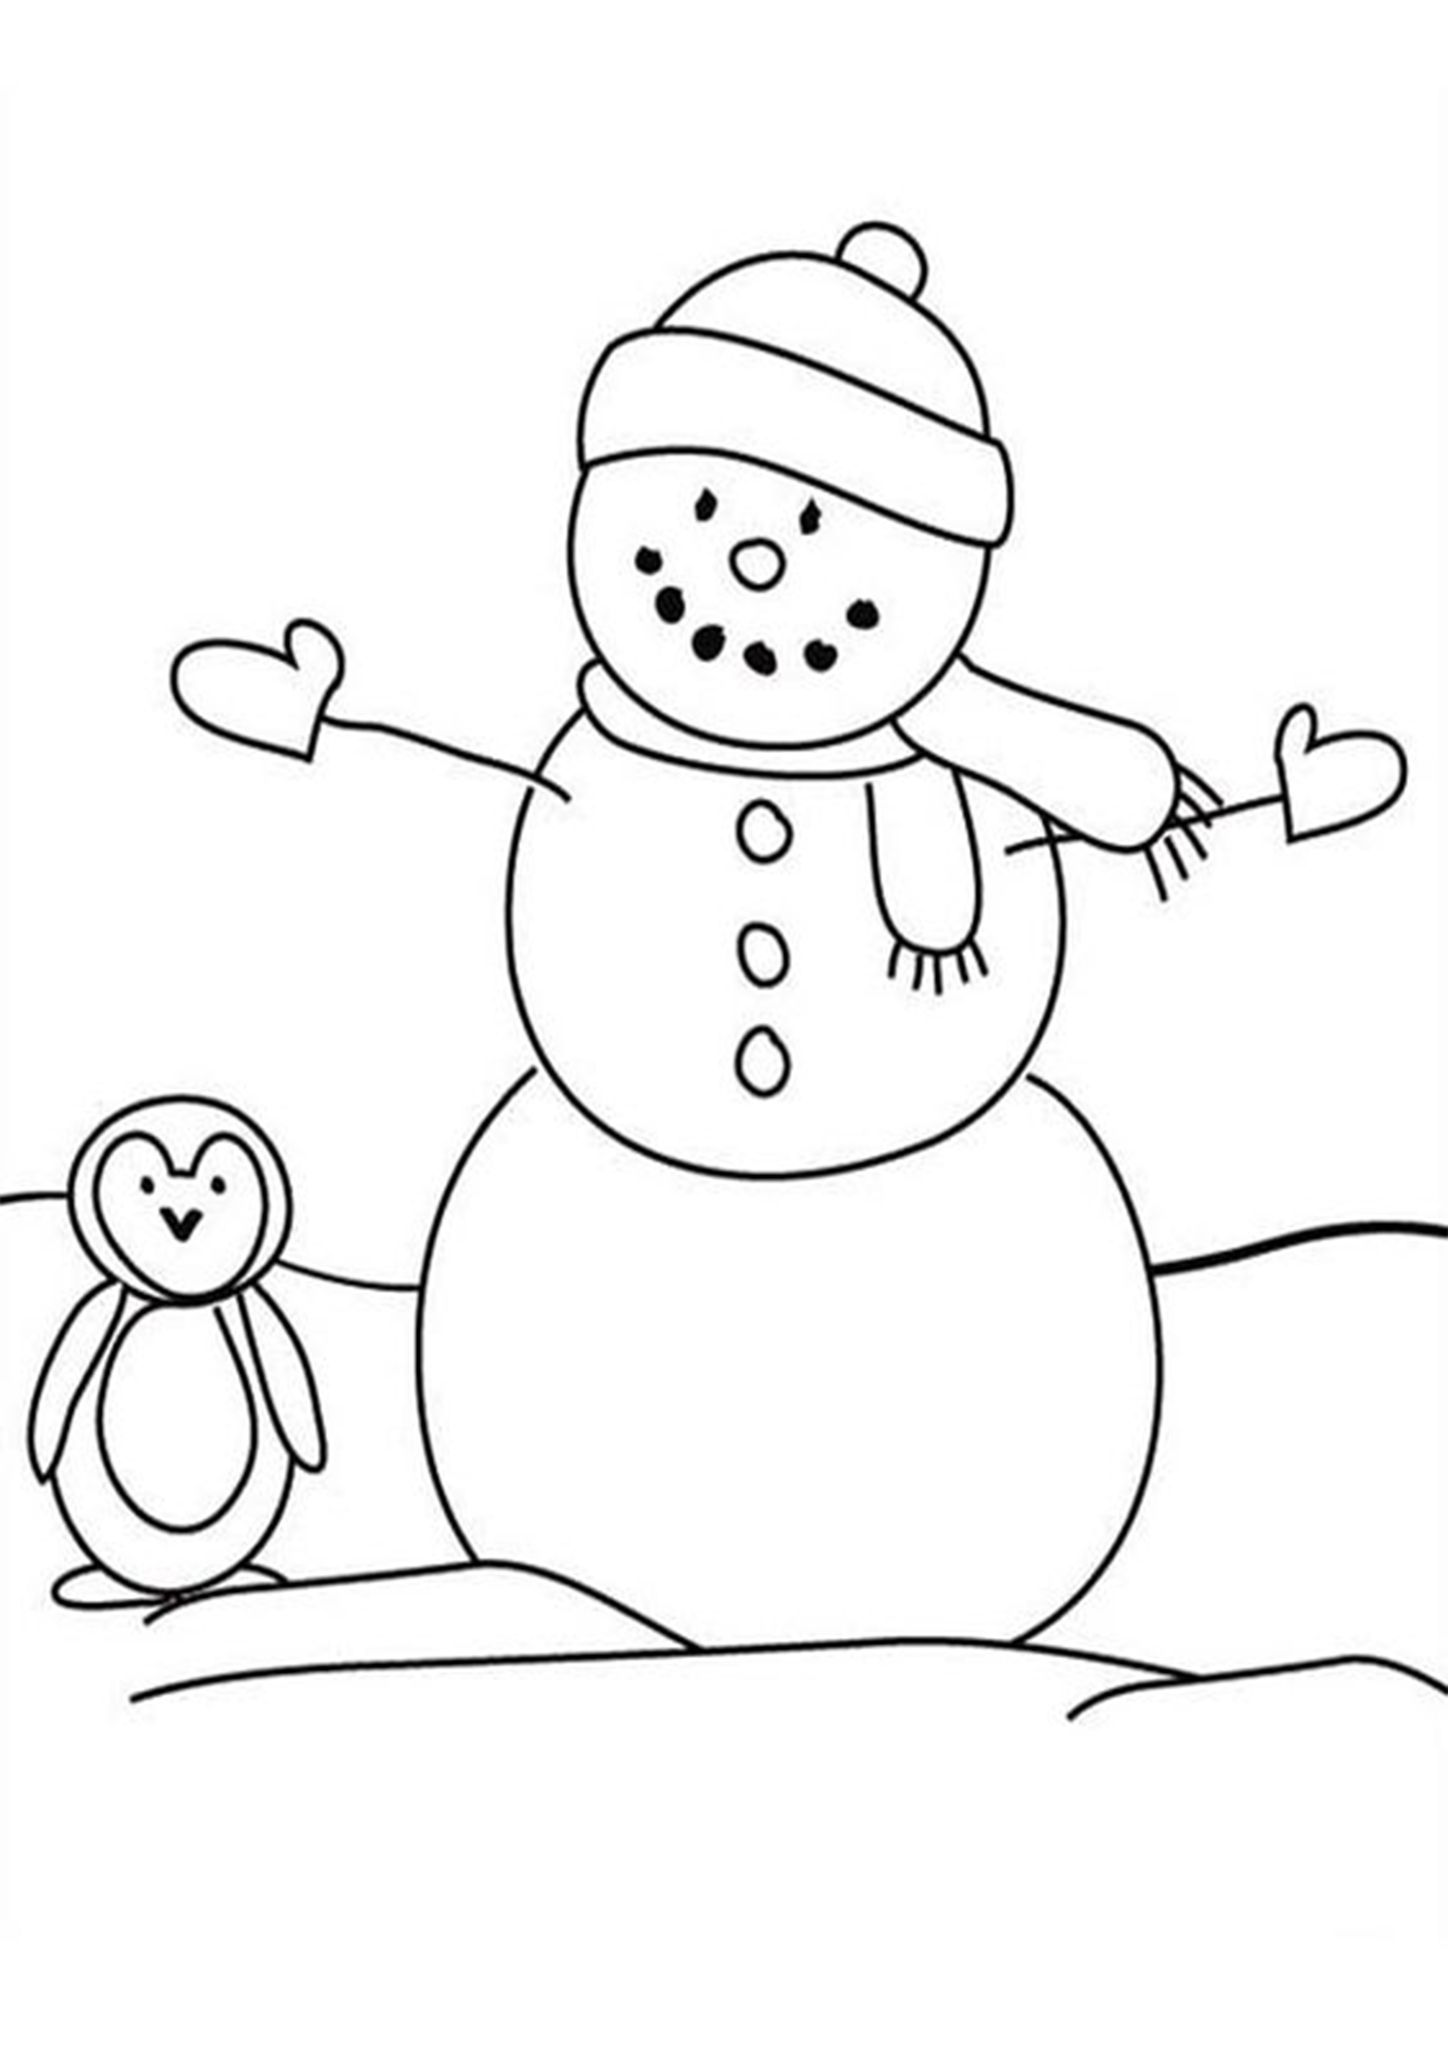 Free Easy To Print Penguin Coloring Pages Snowman Coloring Pages Penguin Coloring Pages Dinosaur Coloring Pages